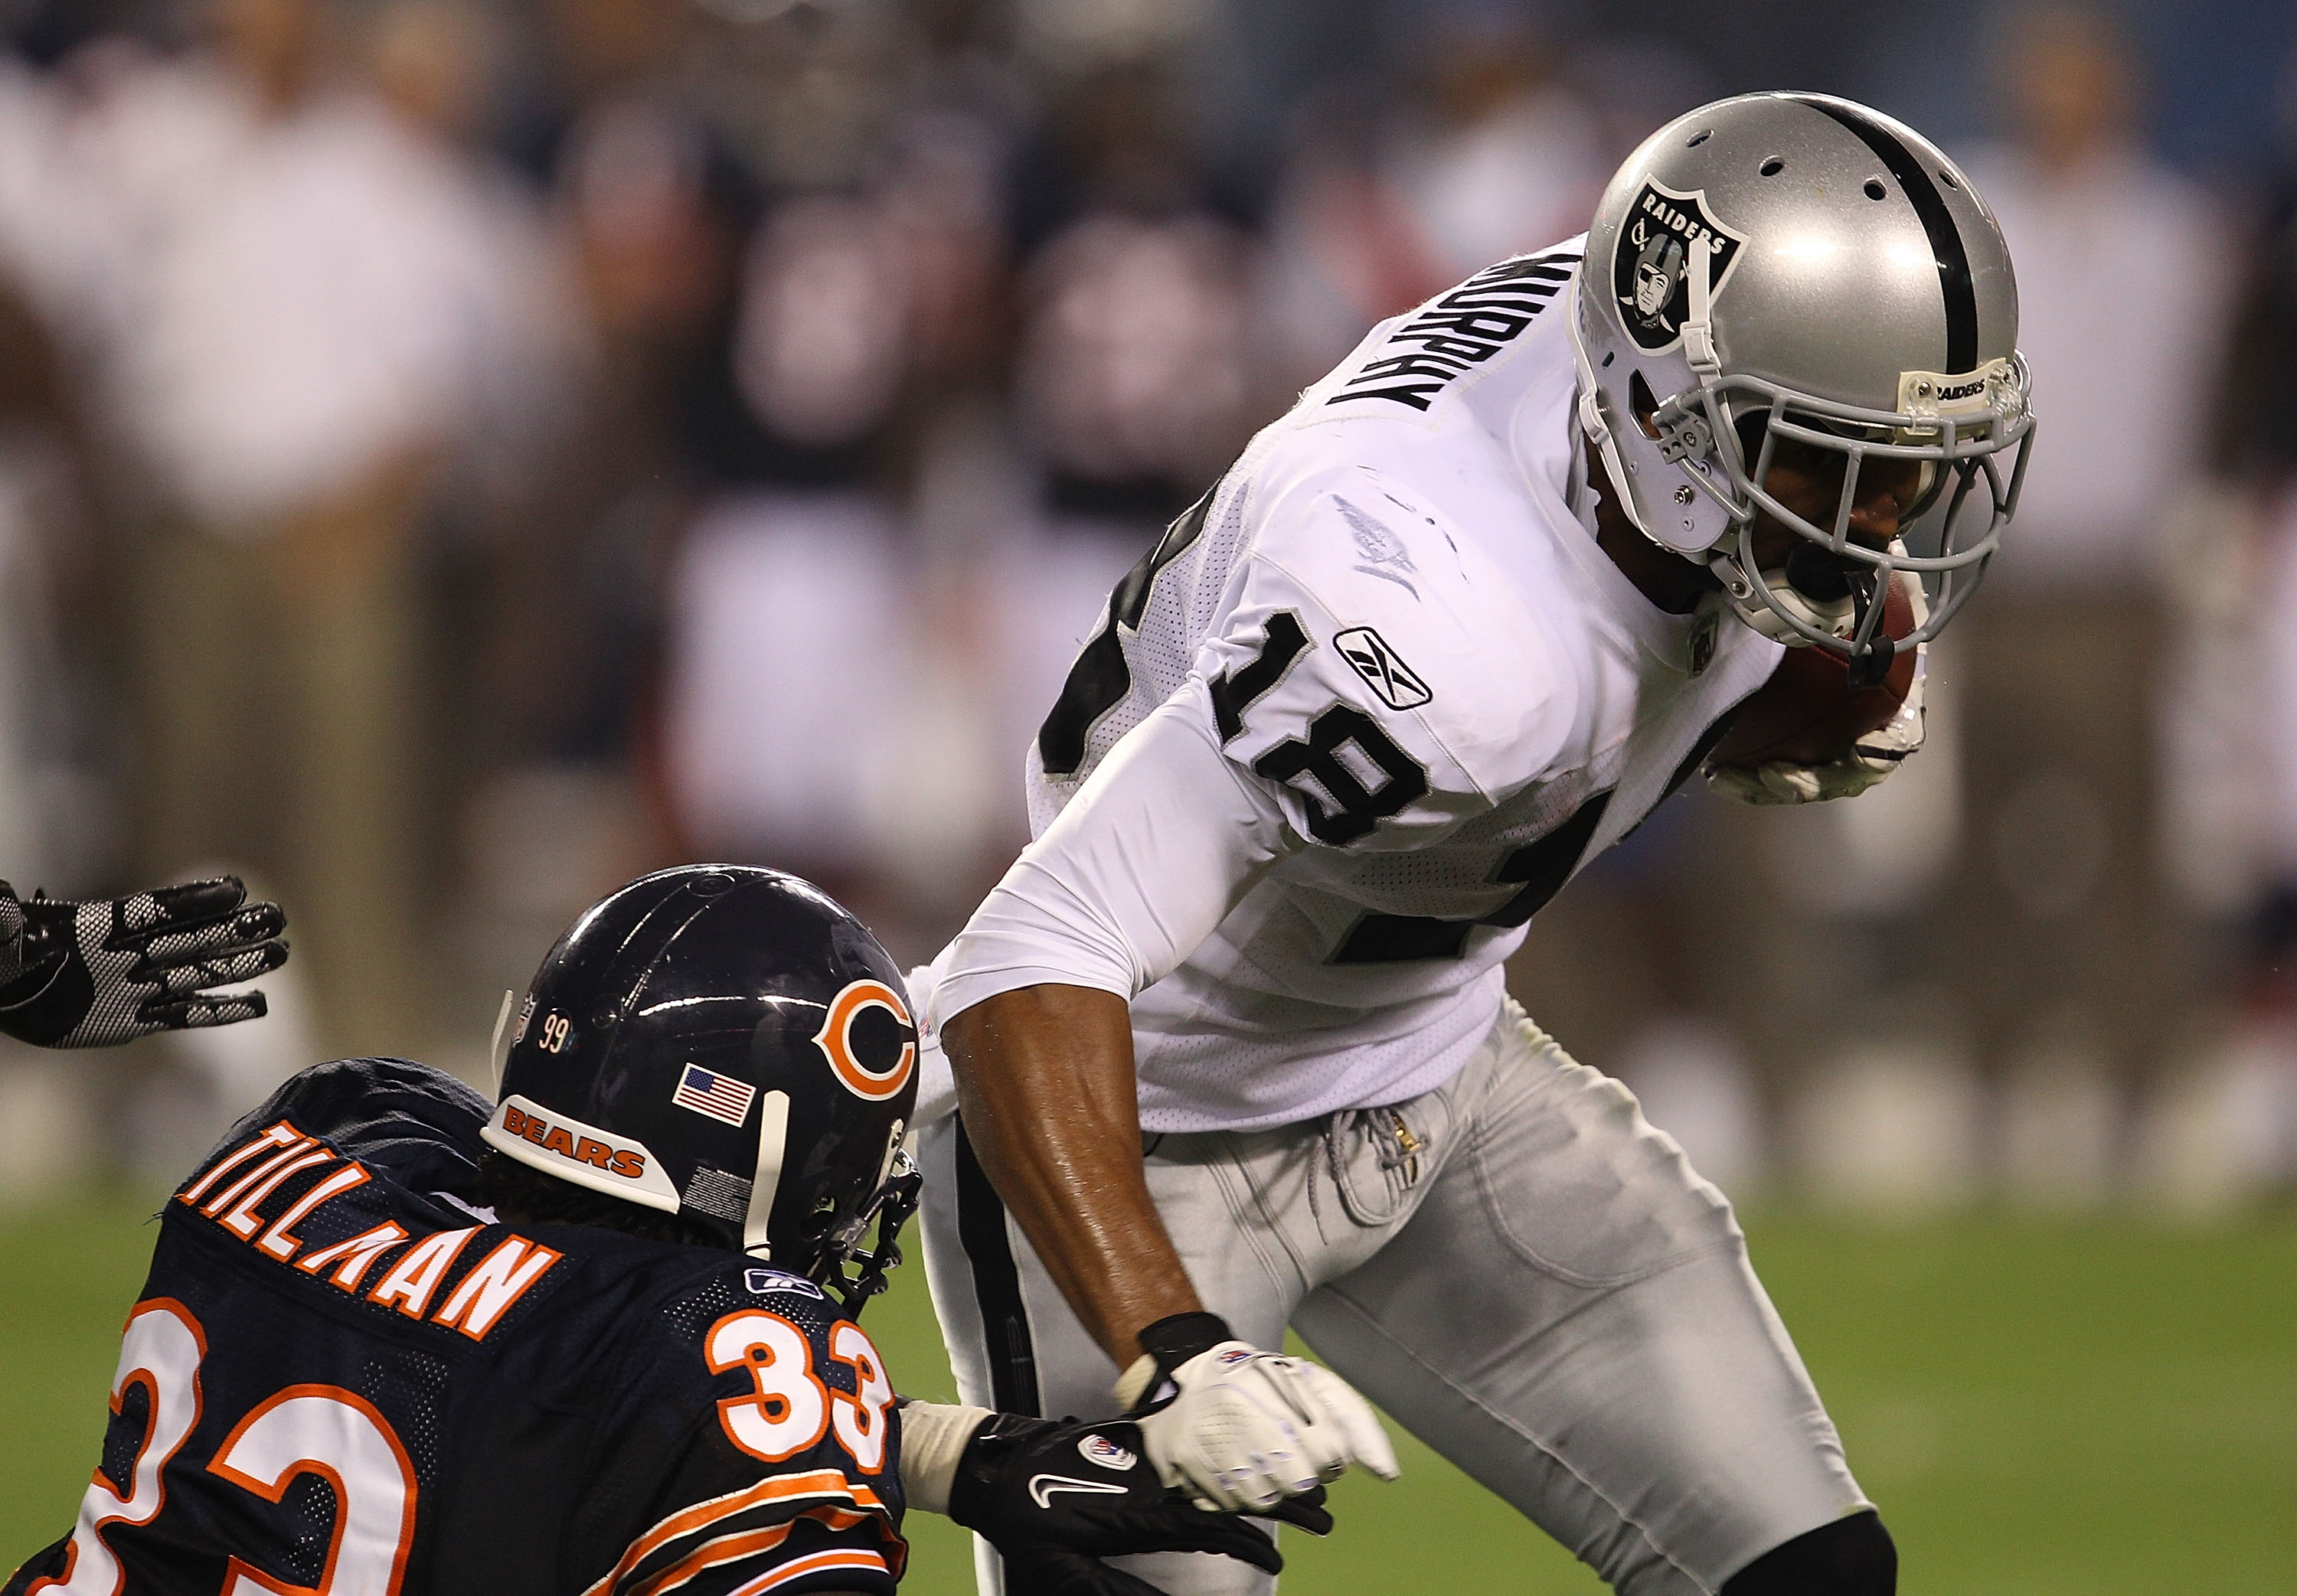 CHICAGO - AUGUST 21: Louis Murphy #18 of the Oakland Raiders runs for yardage as Charles Tillman #33 of the Chicago Bears closes in during a preseason game at Soldier Field on August 21, 2010 in Chicago, Illinois. The Raiders defeated the Bears 32-17. (Ph